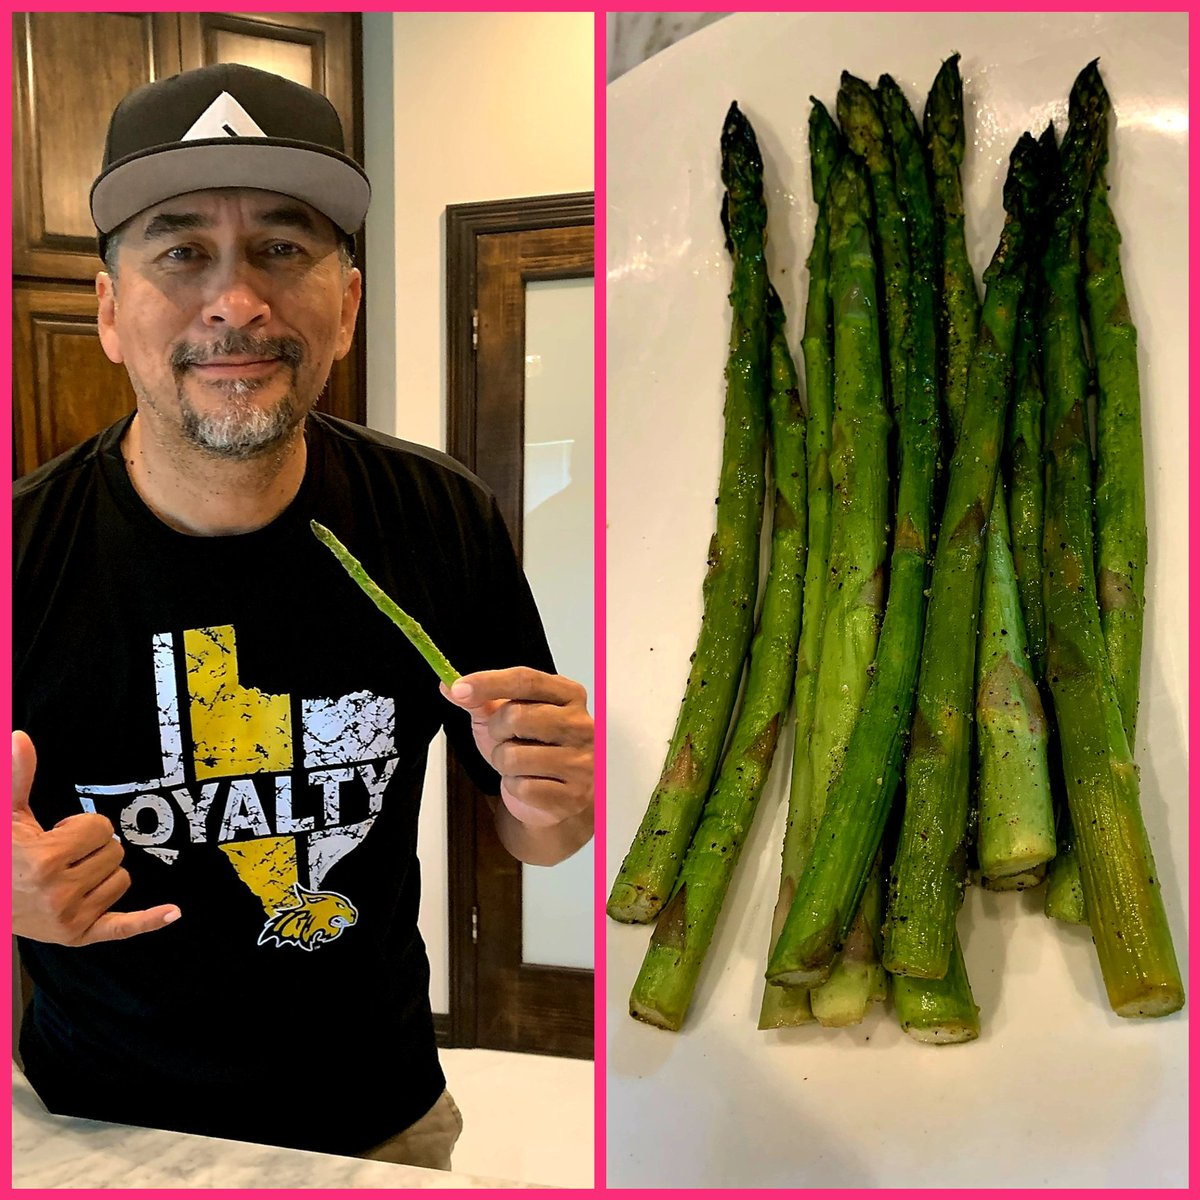 Thank you @Amy_A_Ruvalcaba for the veggie snack! #FitLeaders #StrengthInNumbers